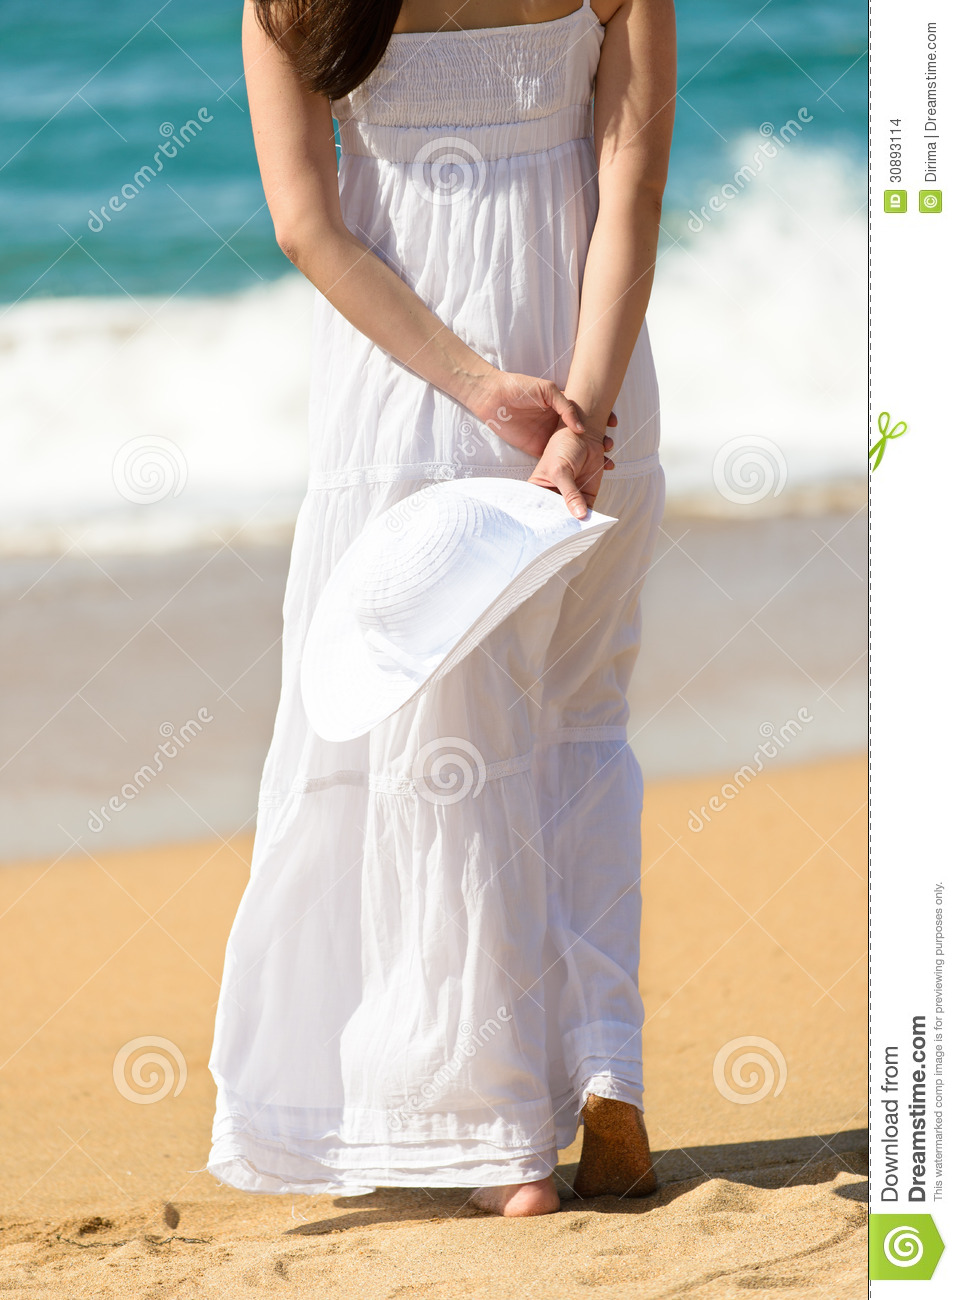 Woman Walking On Beach Stock Images - Image: 30893114